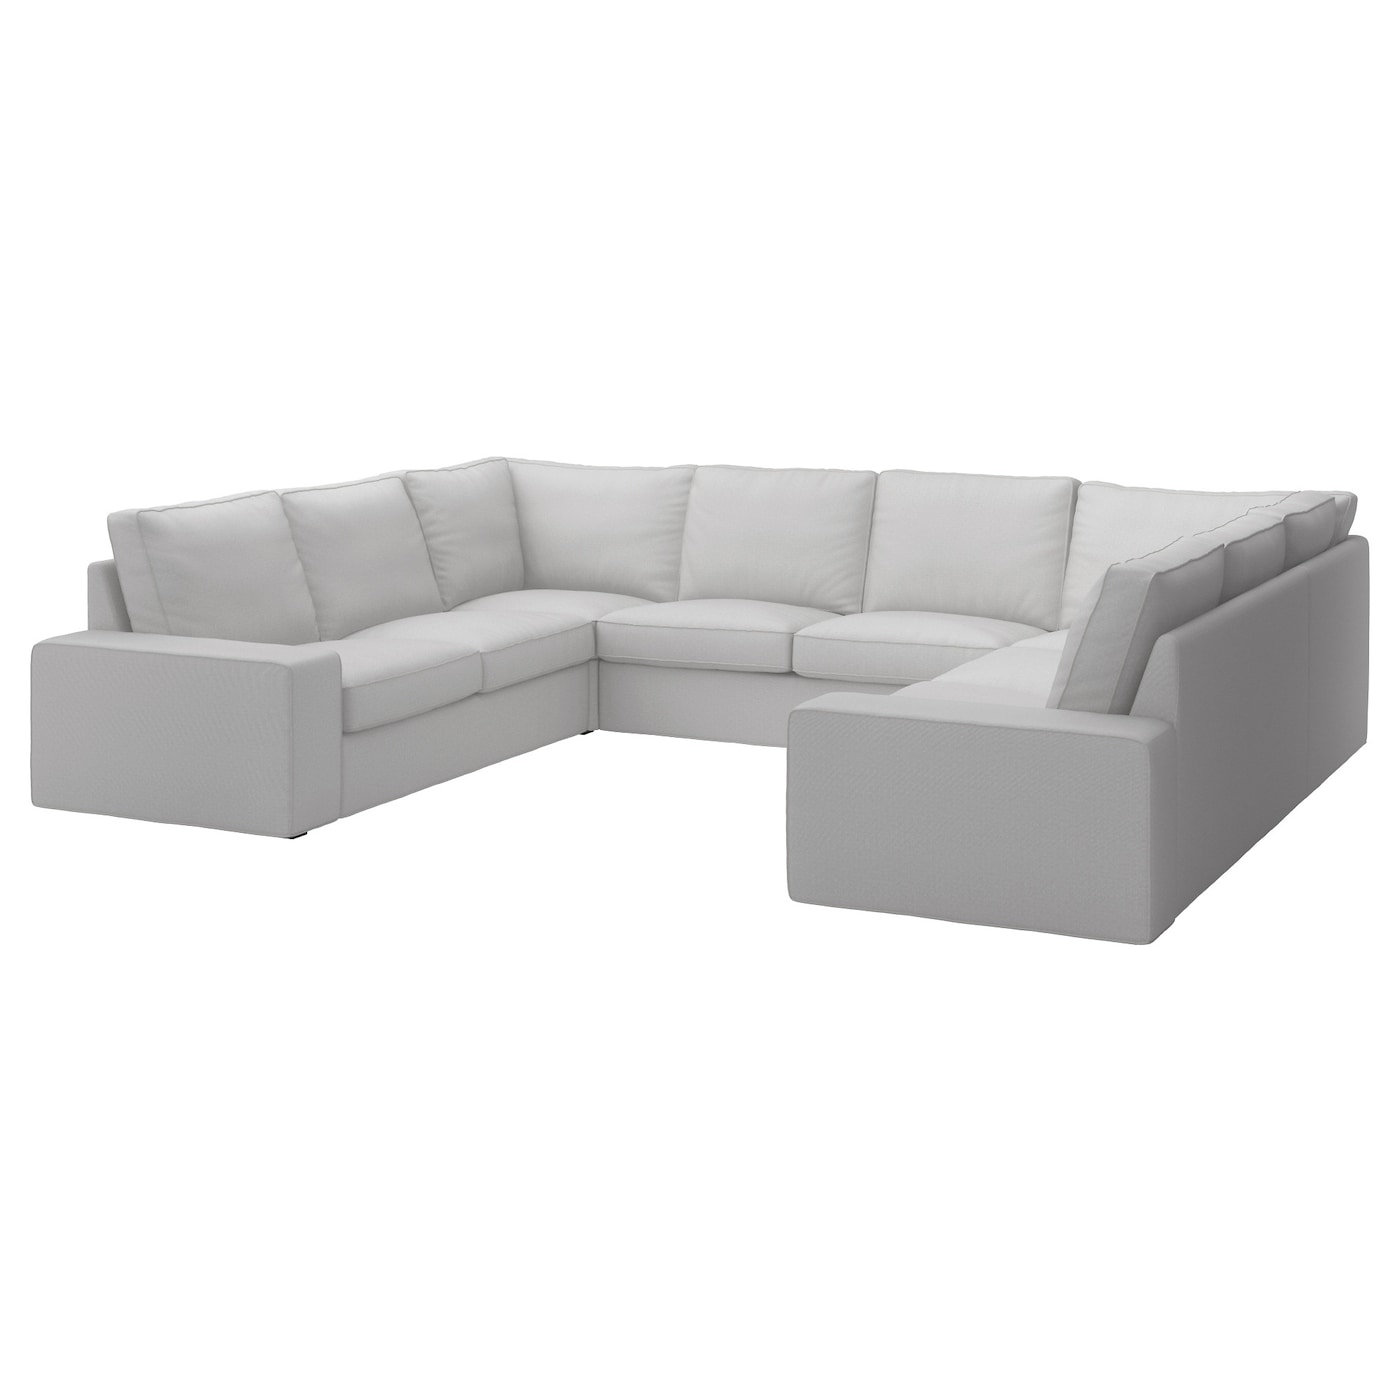 kivik u shaped sofa 6 seat ramna light grey ikea. Black Bedroom Furniture Sets. Home Design Ideas